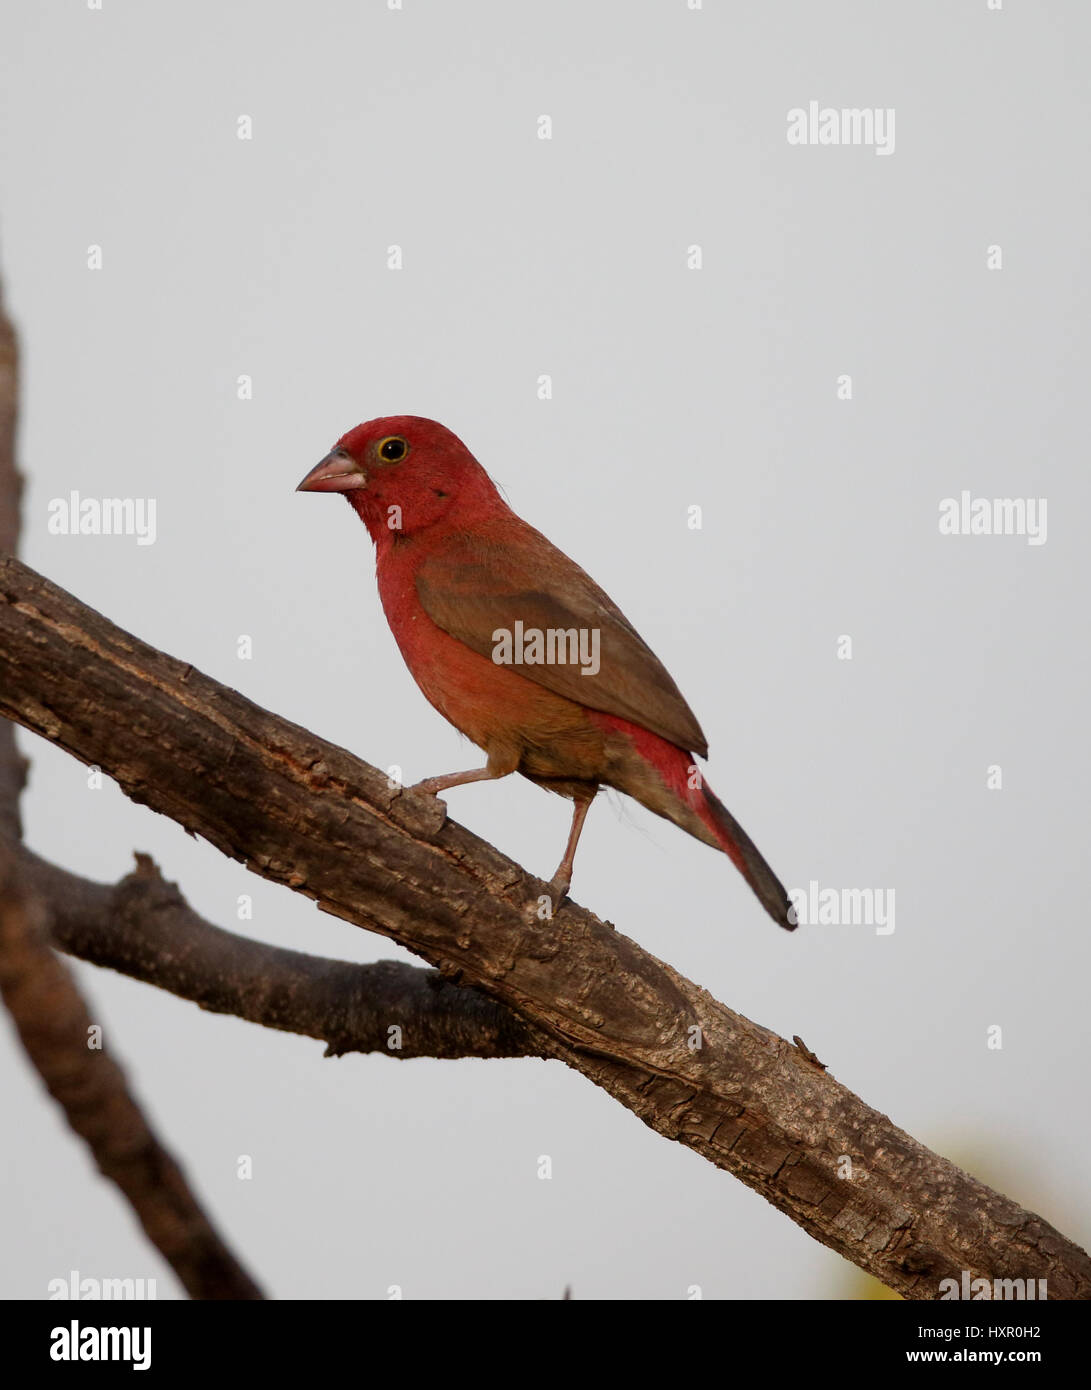 Red-billed firefinch, Lagonosticta senegala, single bird on branch, Gambia, February 2016 Stock Photo